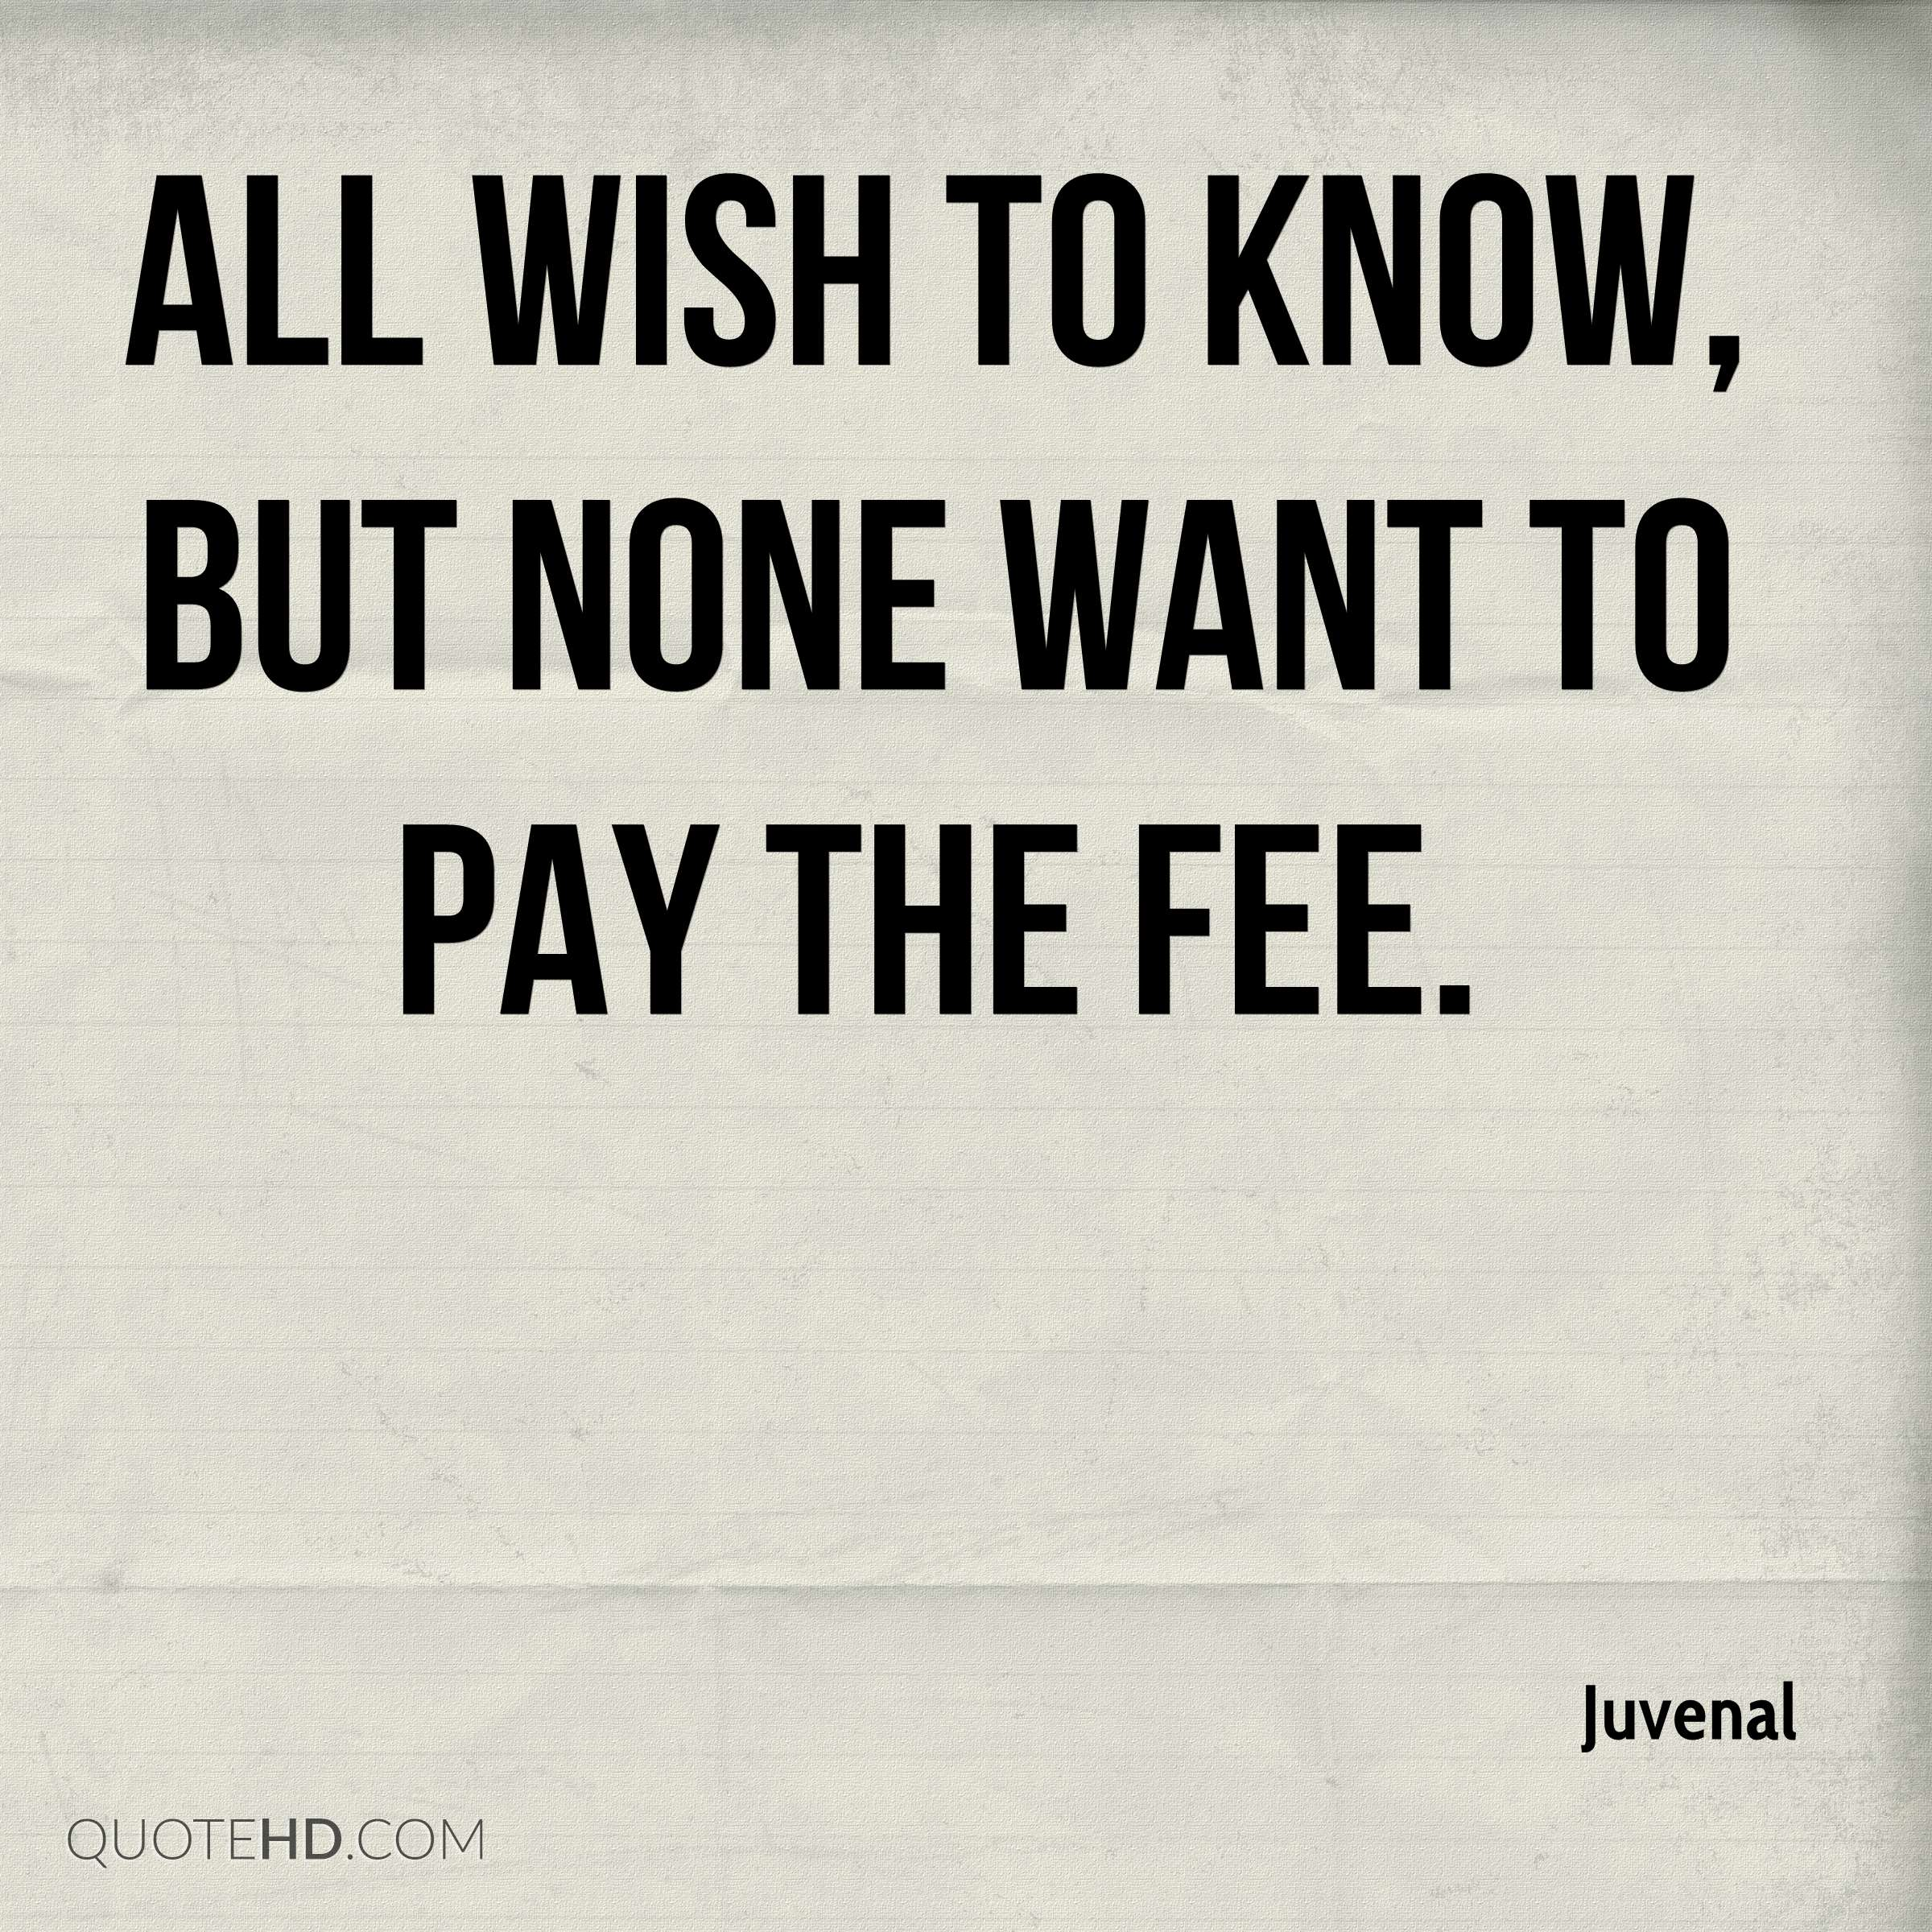 All wish to know, but none want to pay the fee.